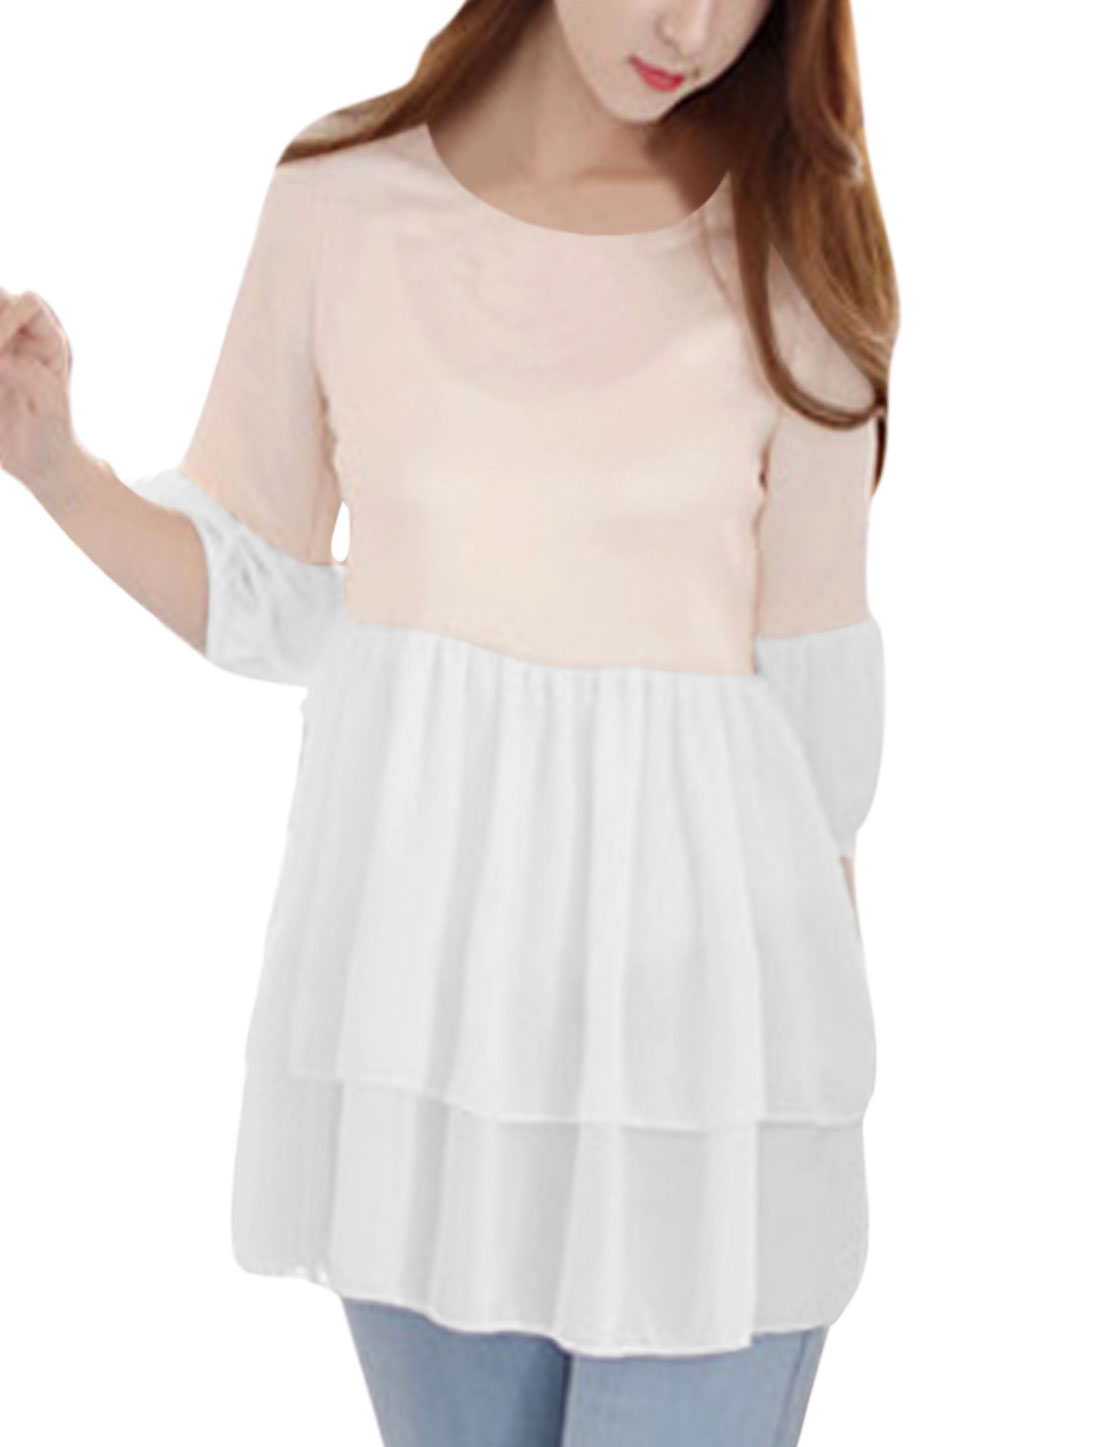 Women Self Tie Bowknot Layered Chic Blouse White Light Pink S